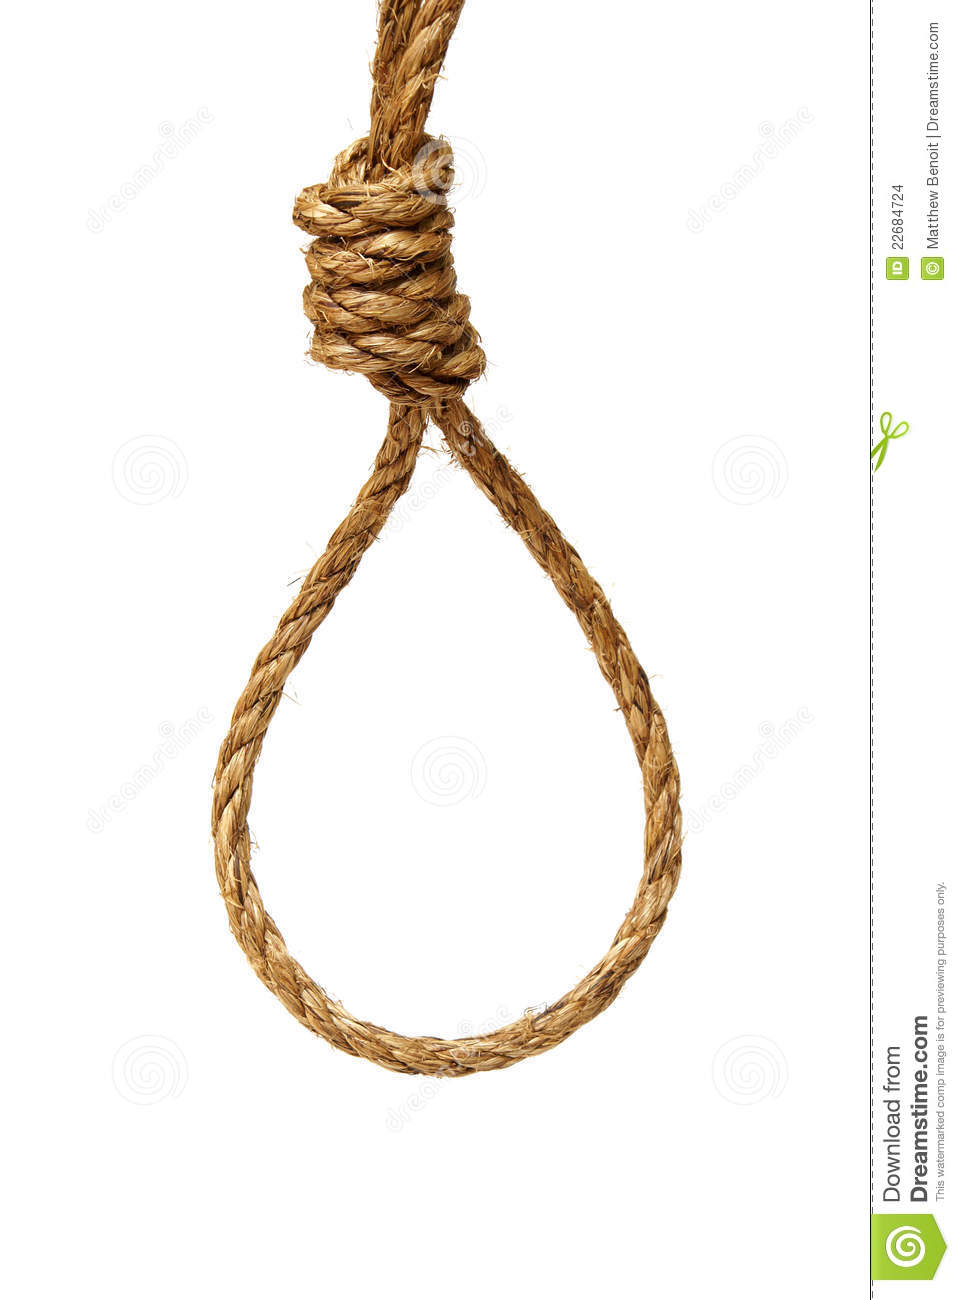 medium resolution of a ready made noose on a white background